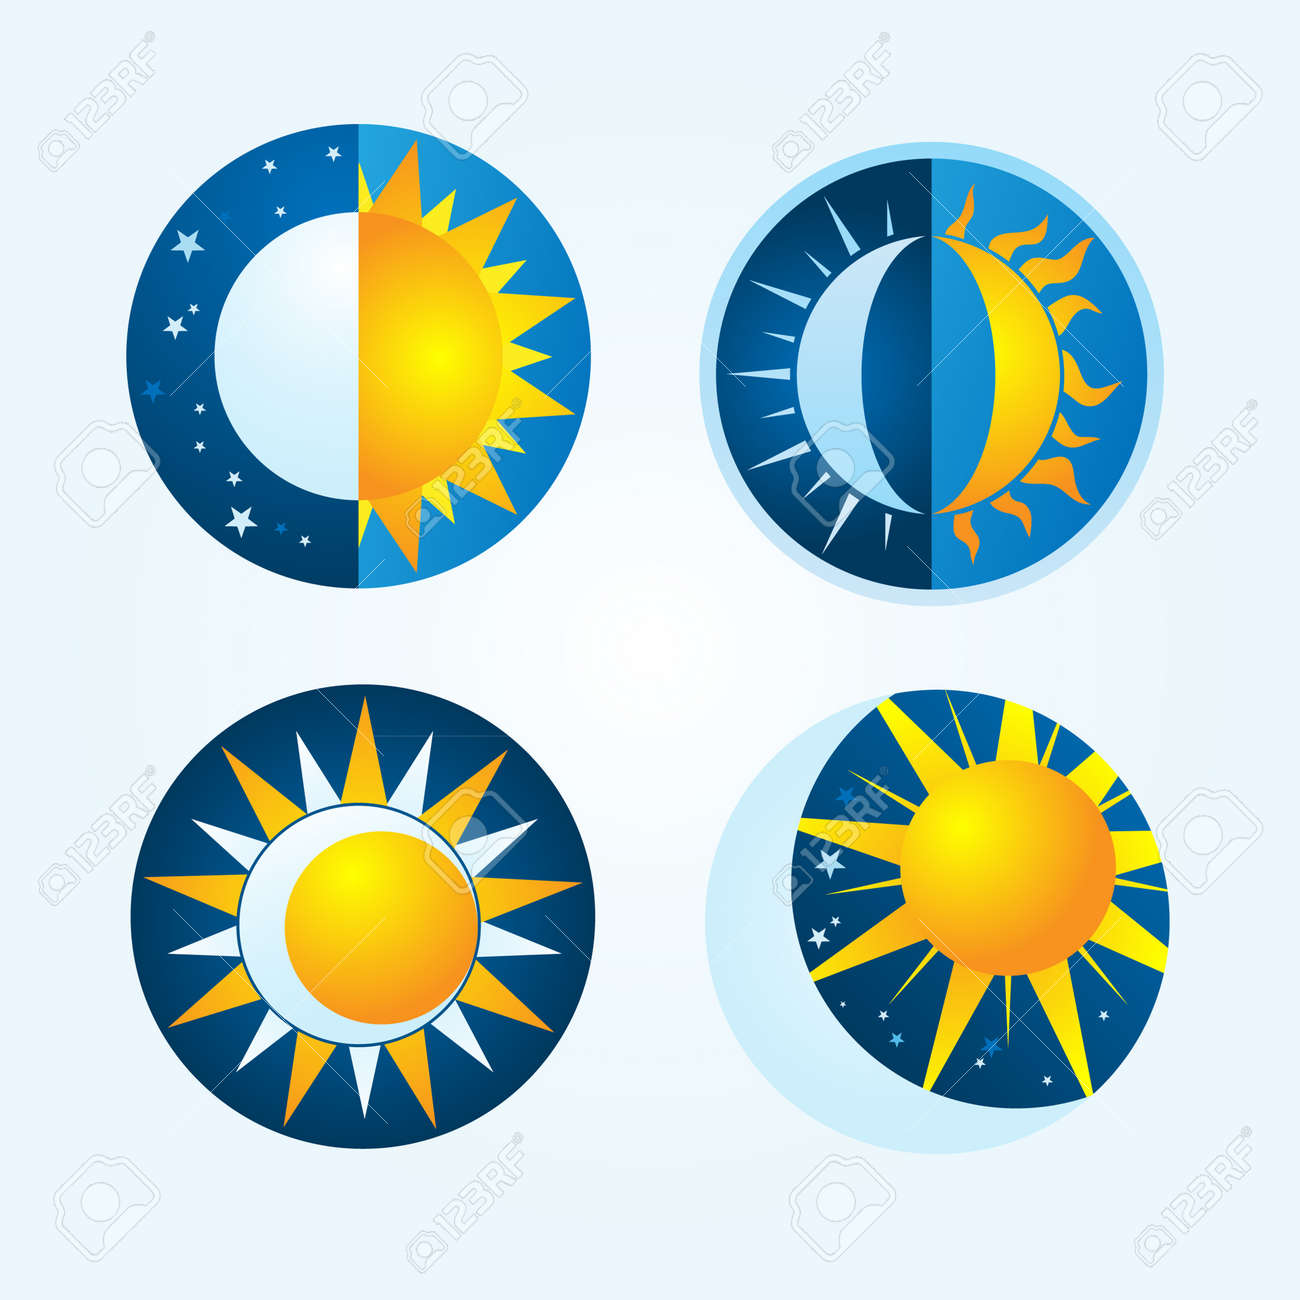 sun and moon royalty free cliparts vectors and stock illustration rh 123rf com Sun and Moon Art Anime Sun and Moon